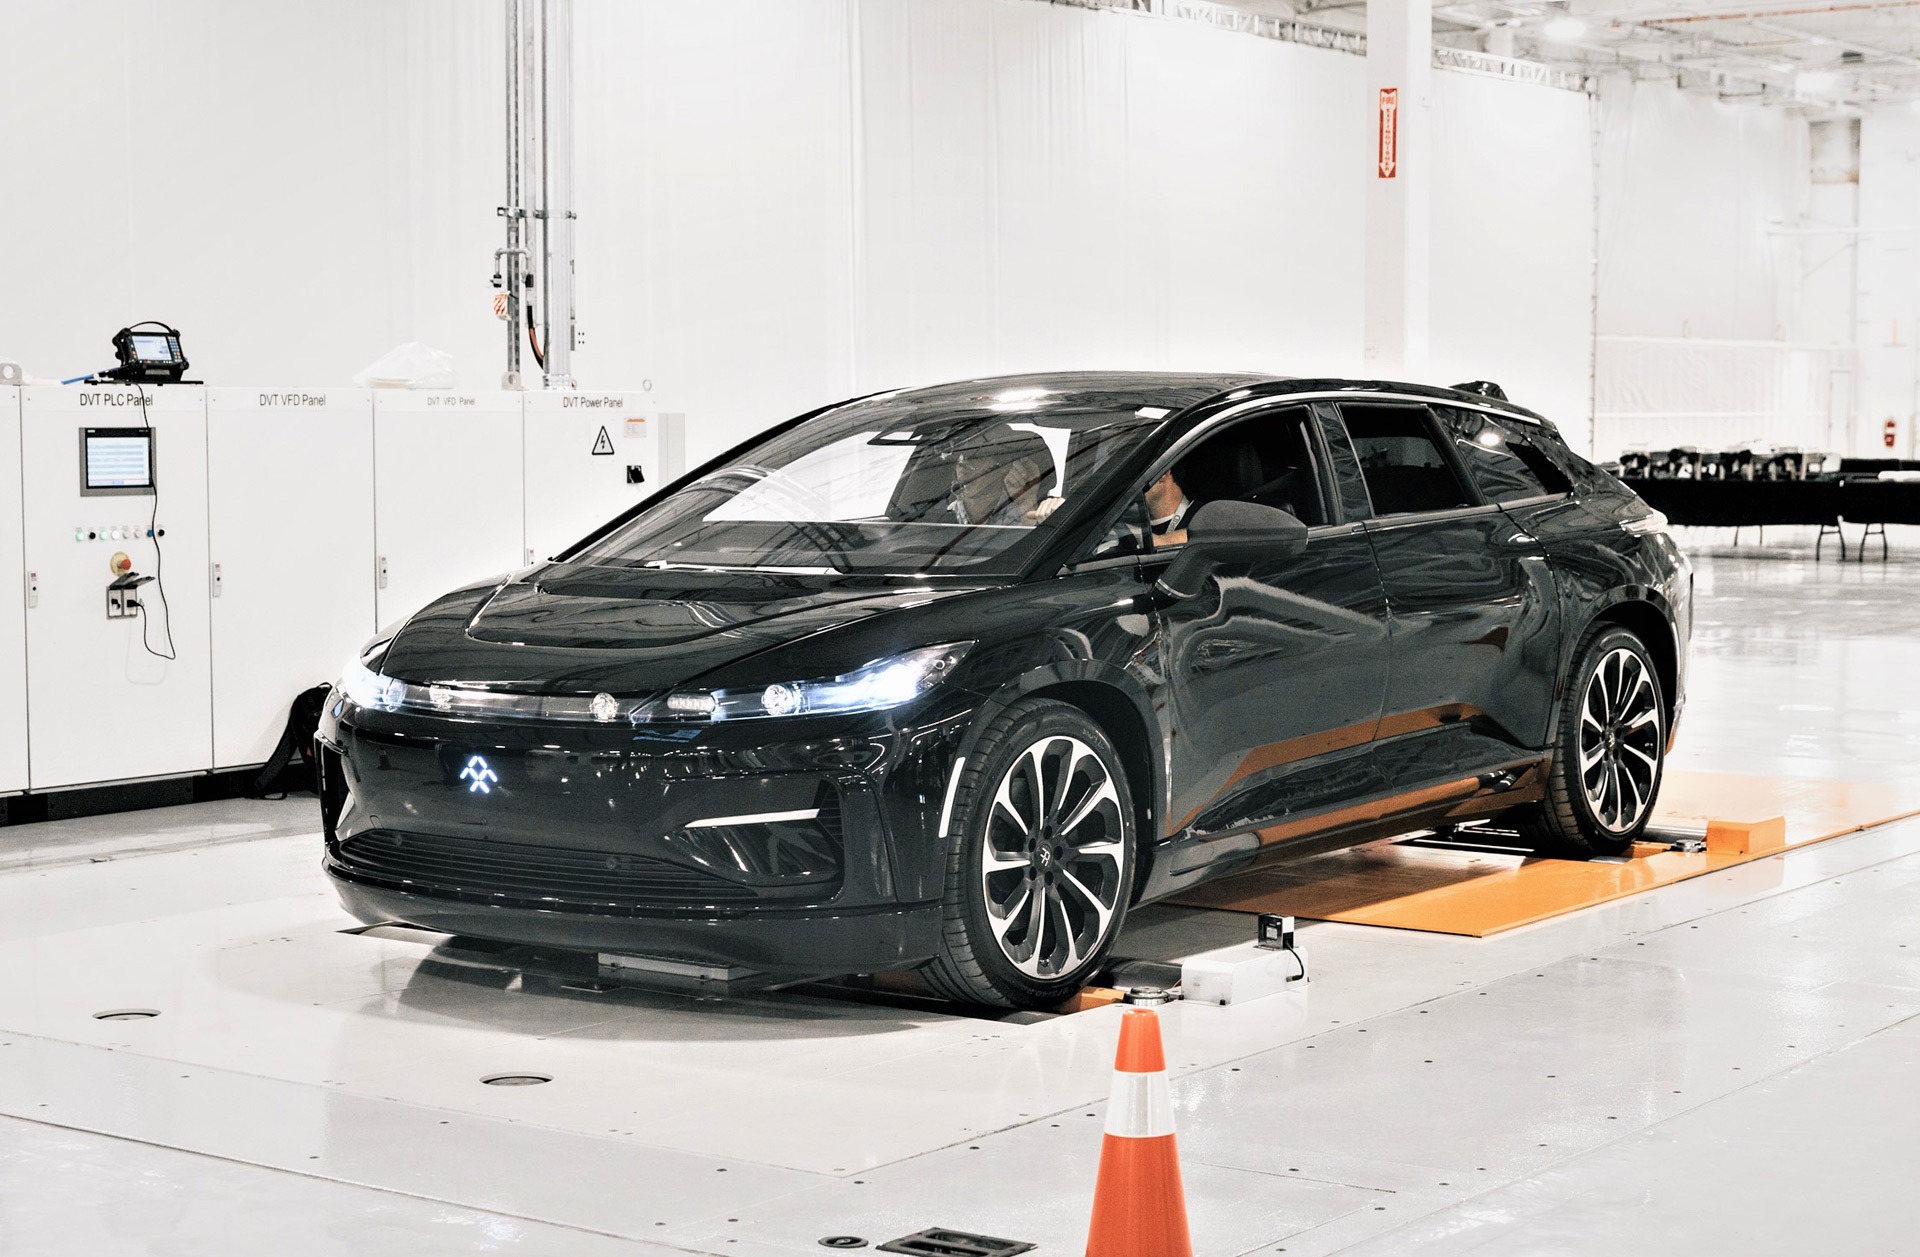 Faraday Future Revealed Company Gets Funding To Produce Ff91